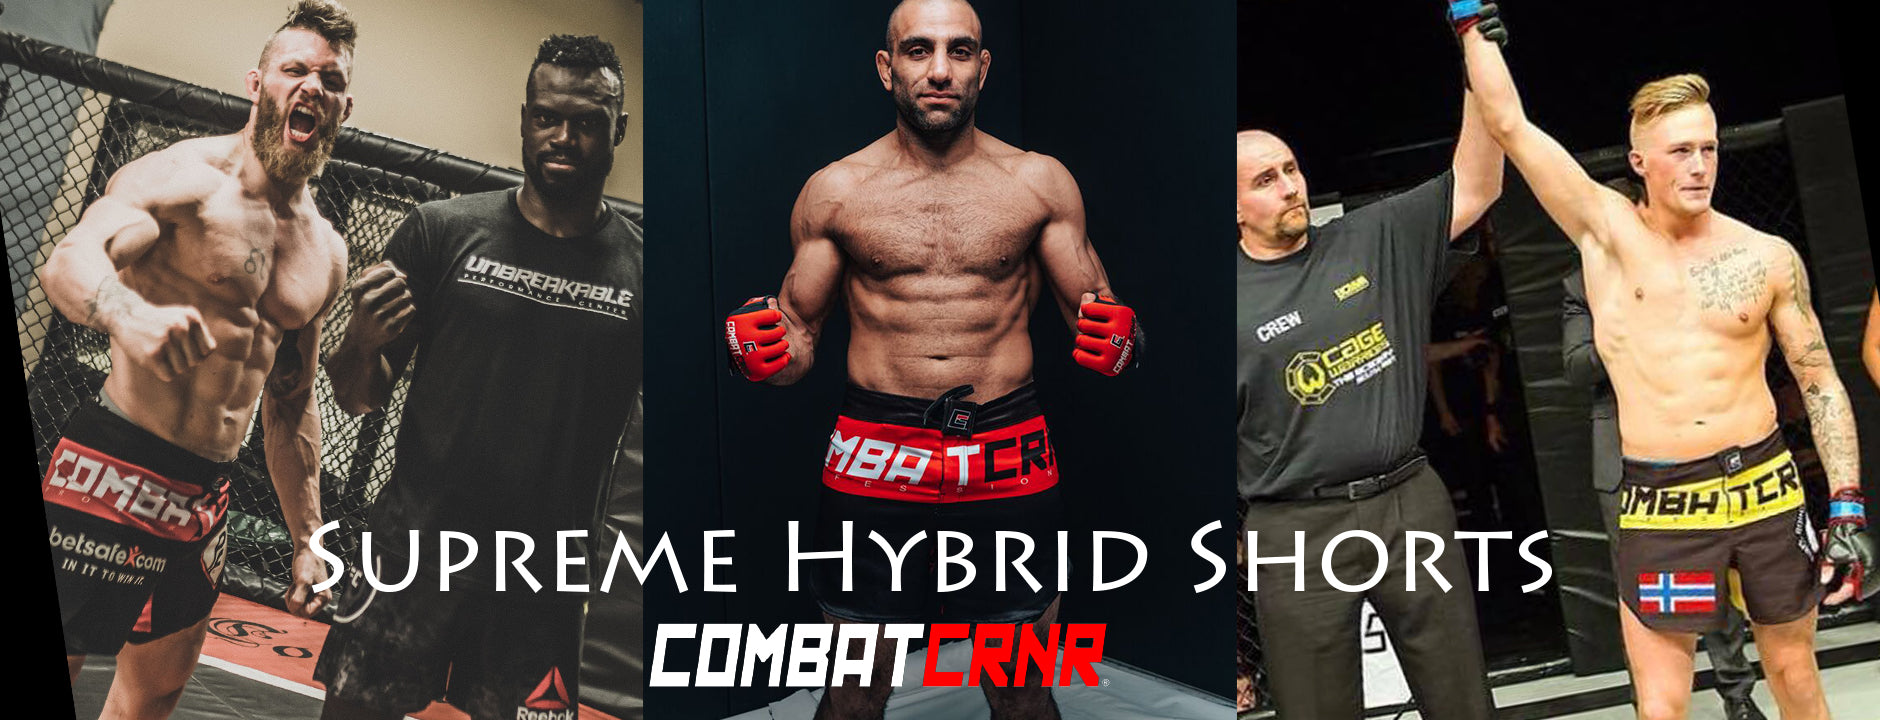 mma shorts norge combat corner norge